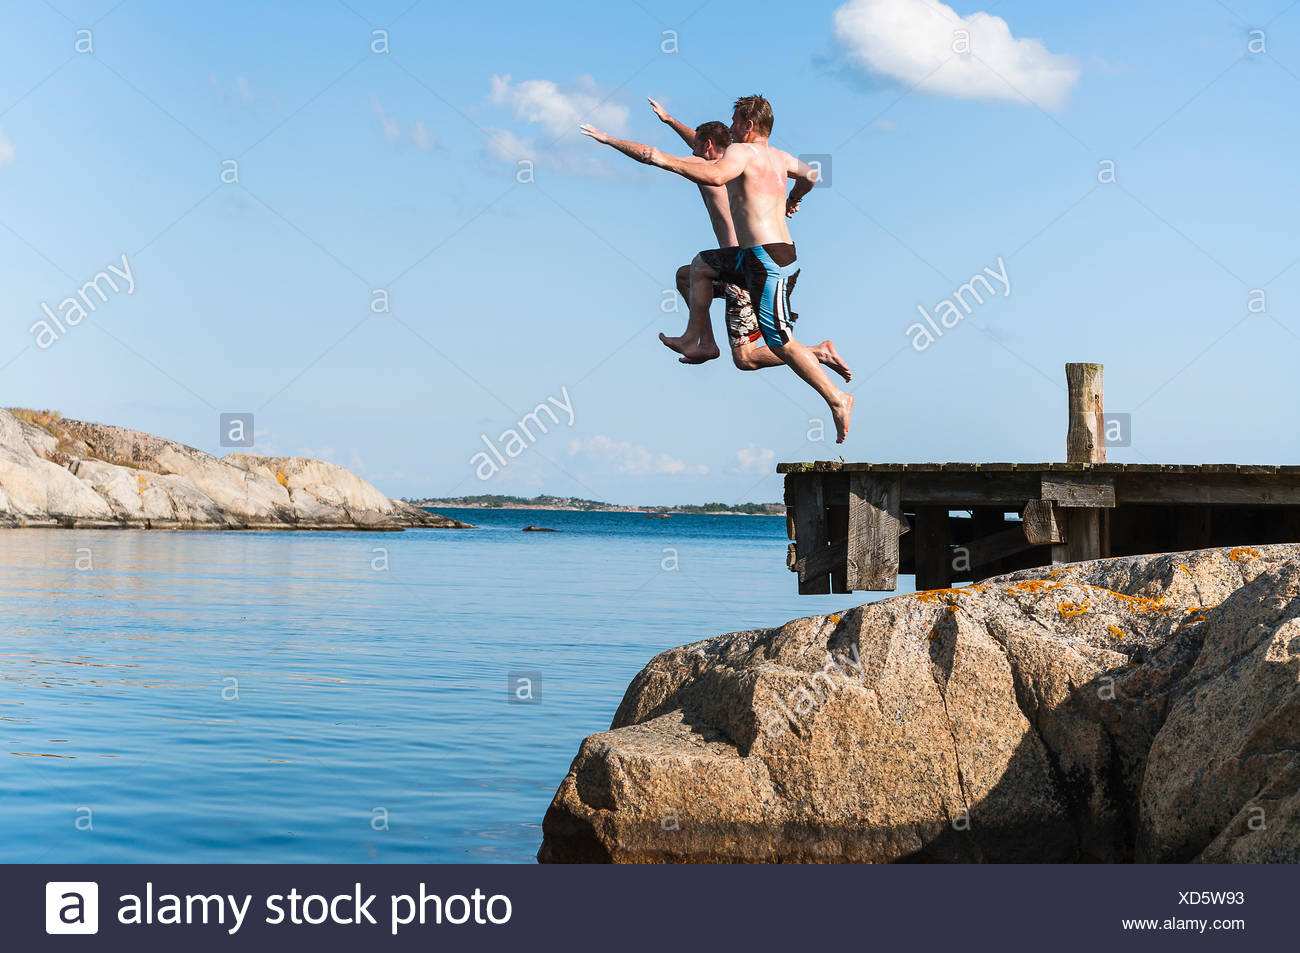 Sweden, Stockholm archipelago, Uppland, Vidinge, Two men jumping into lake from jetty - Stock Image